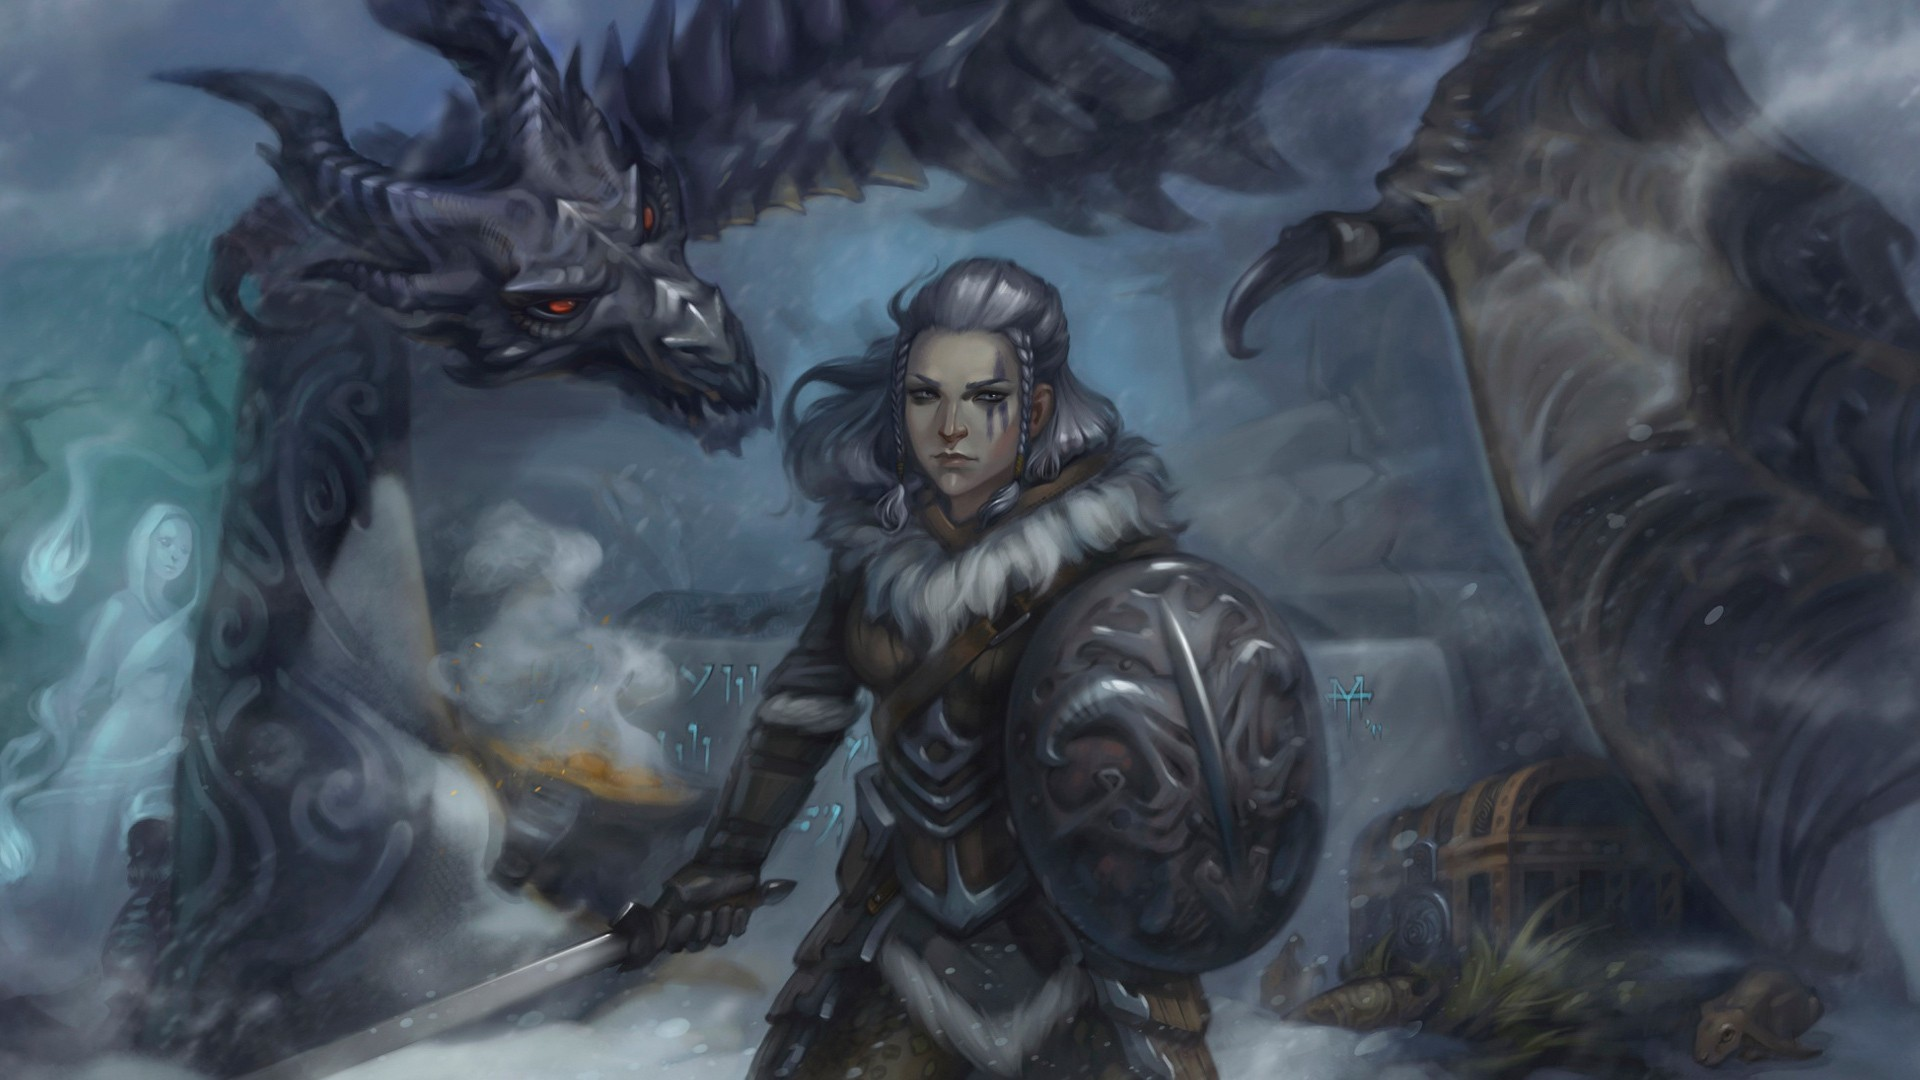 79 Female Skyrim This article has been viewed 116,250 times. 79 female skyrim